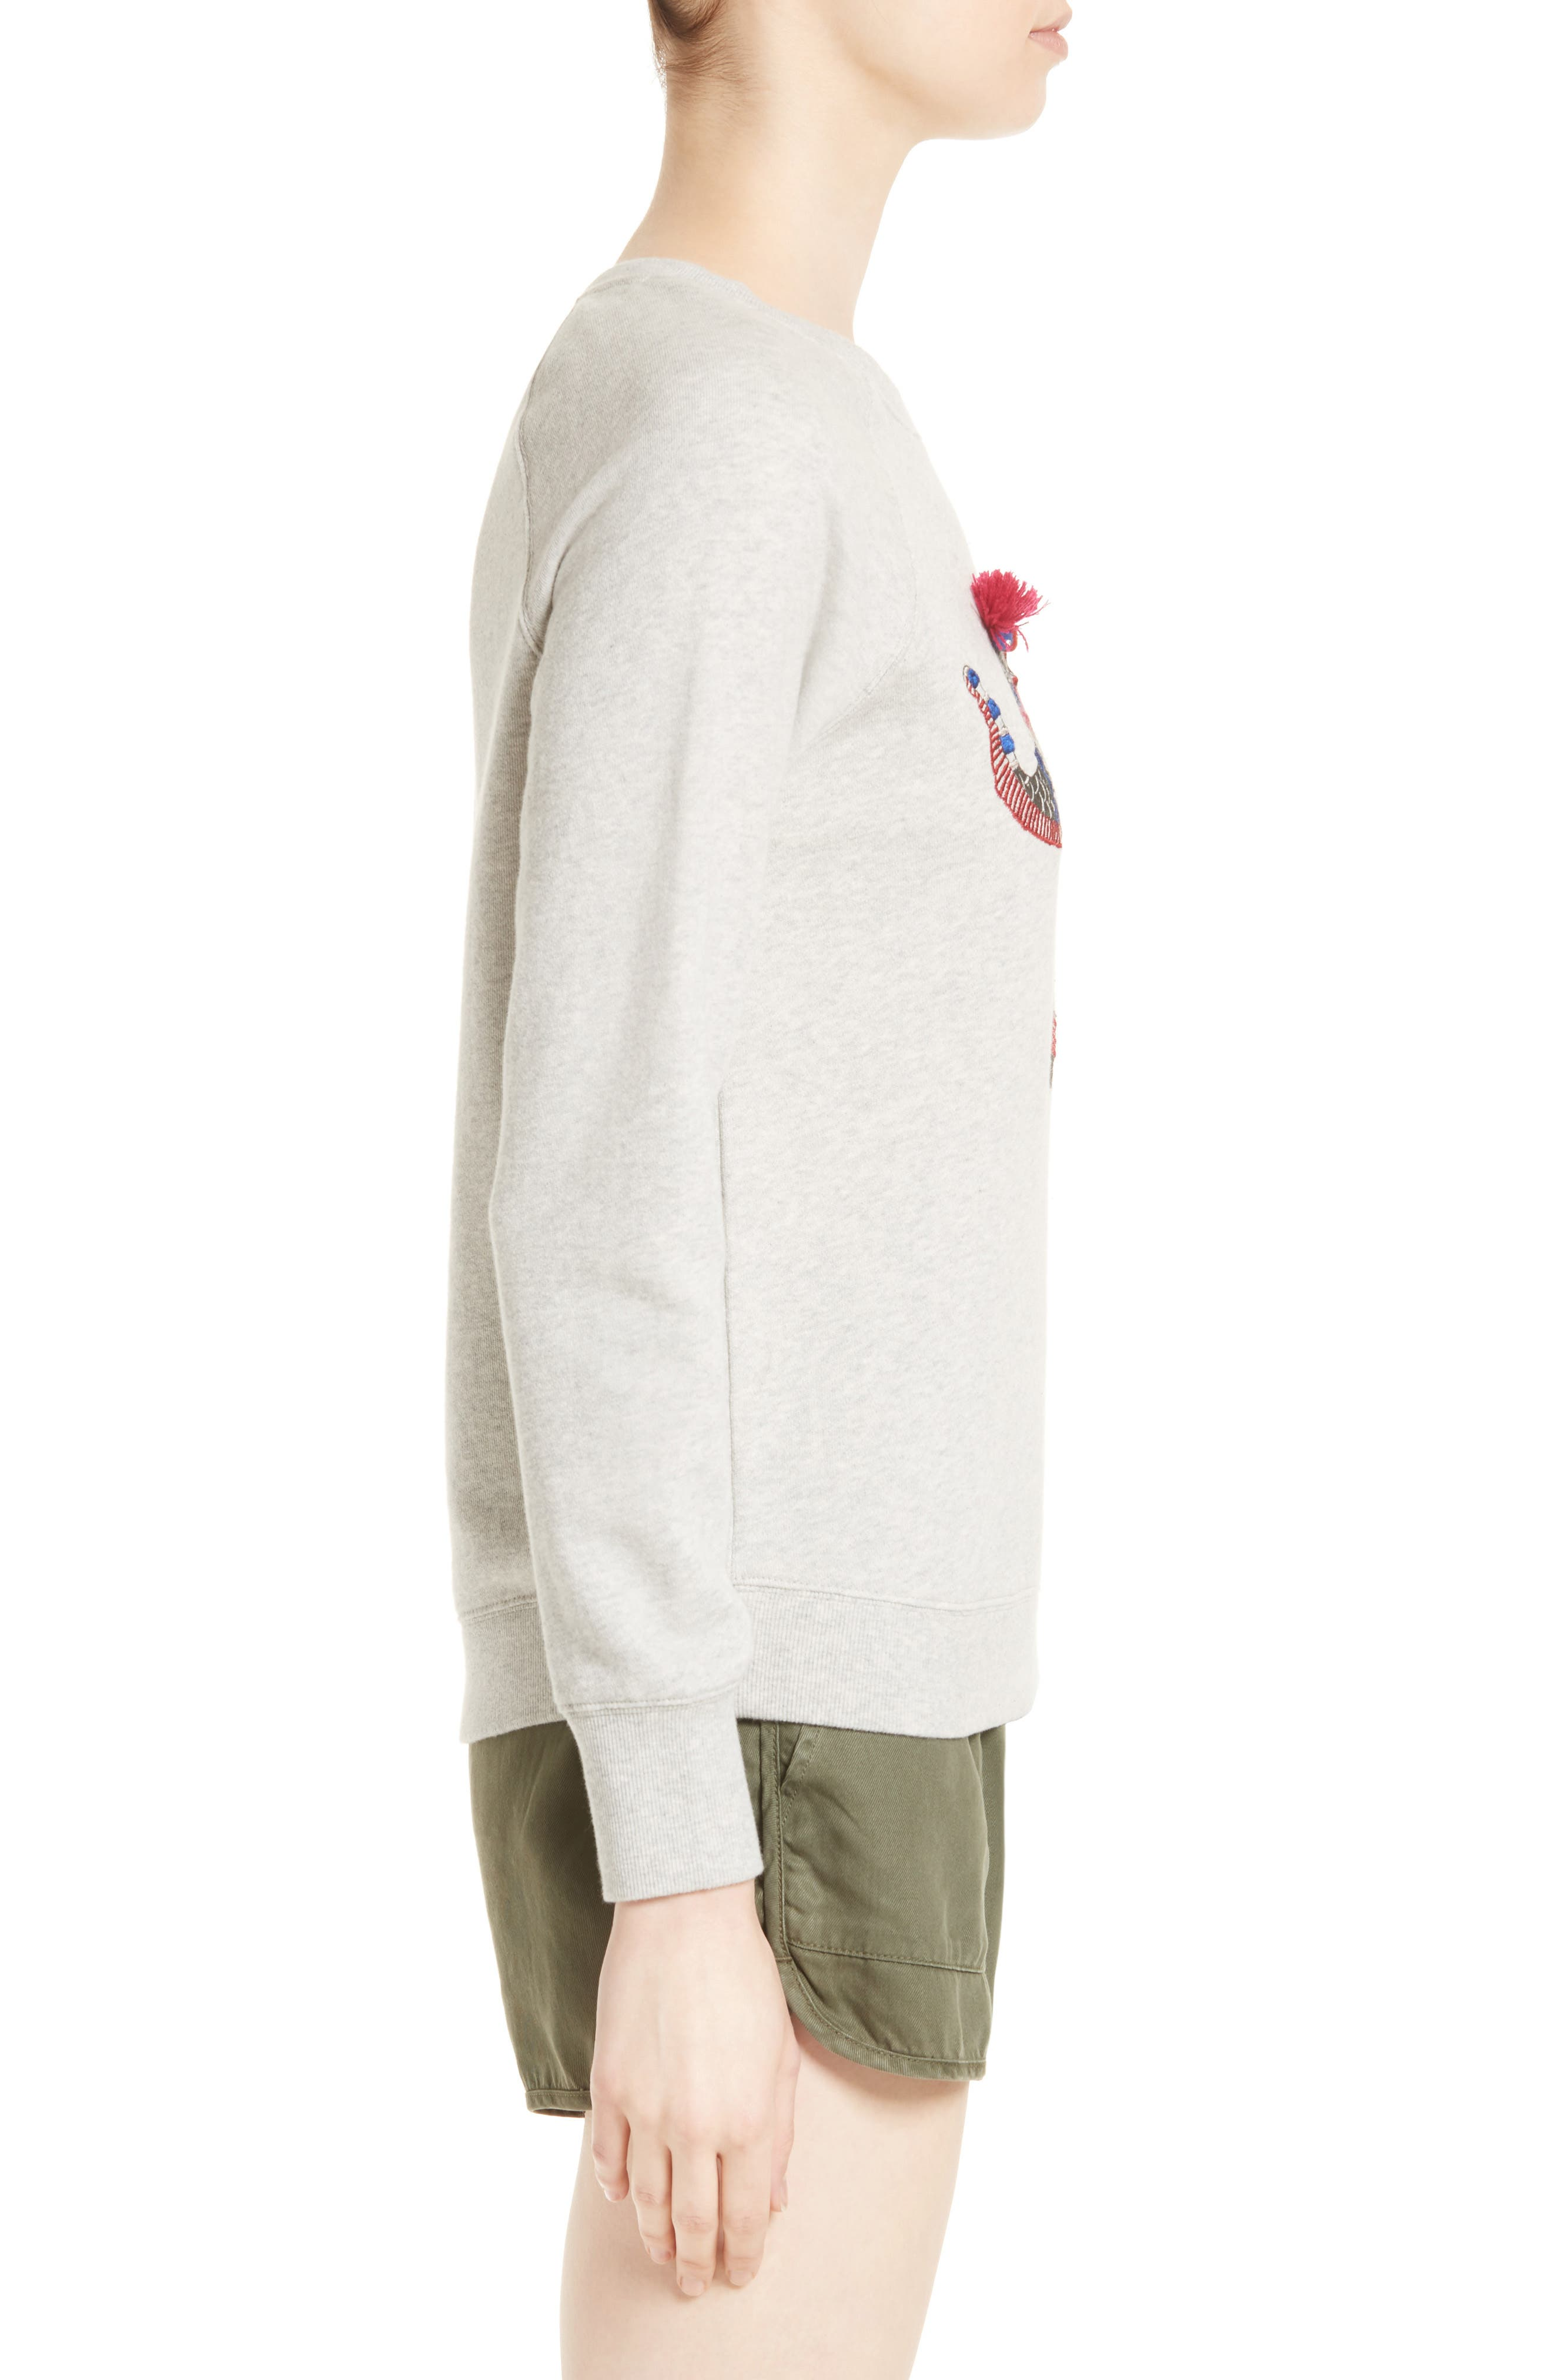 SOFT JOIE,                             Annora Embroidered Elephant Sweatshirt,                             Alternate thumbnail 3, color,                             099